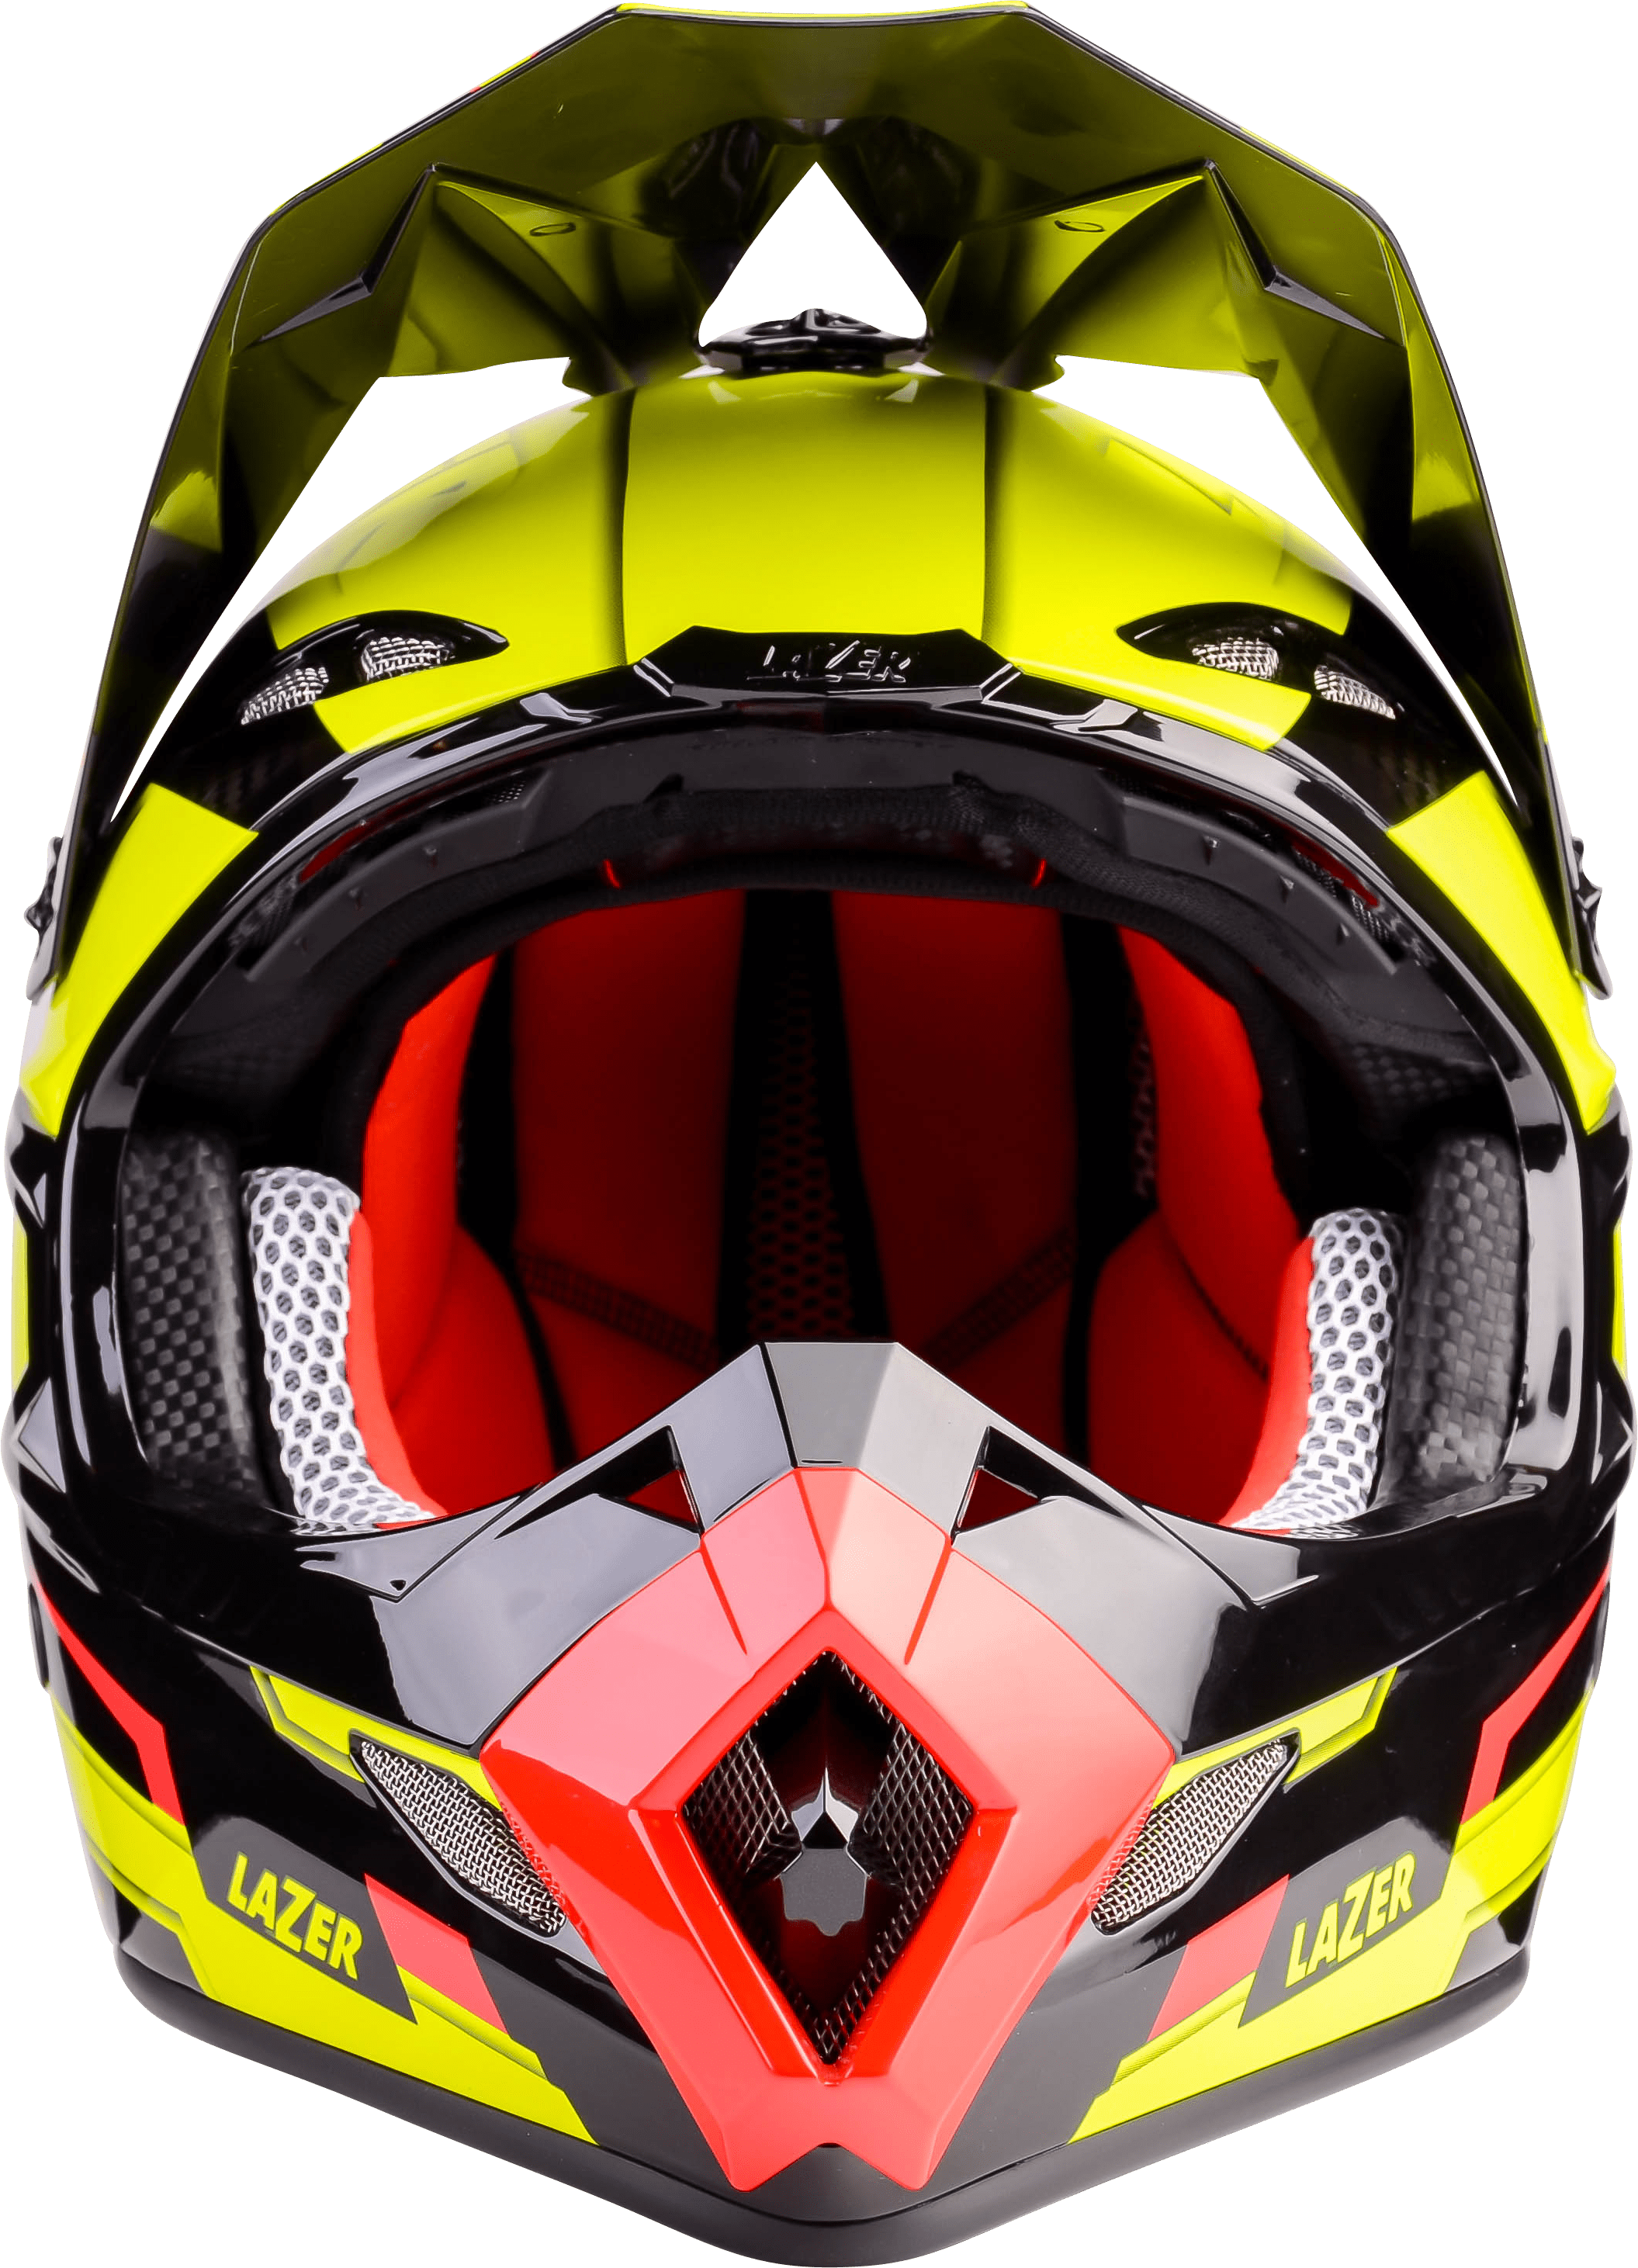 Motorcycle clipart yellow motorcycle. Helmet lazer mx geotech